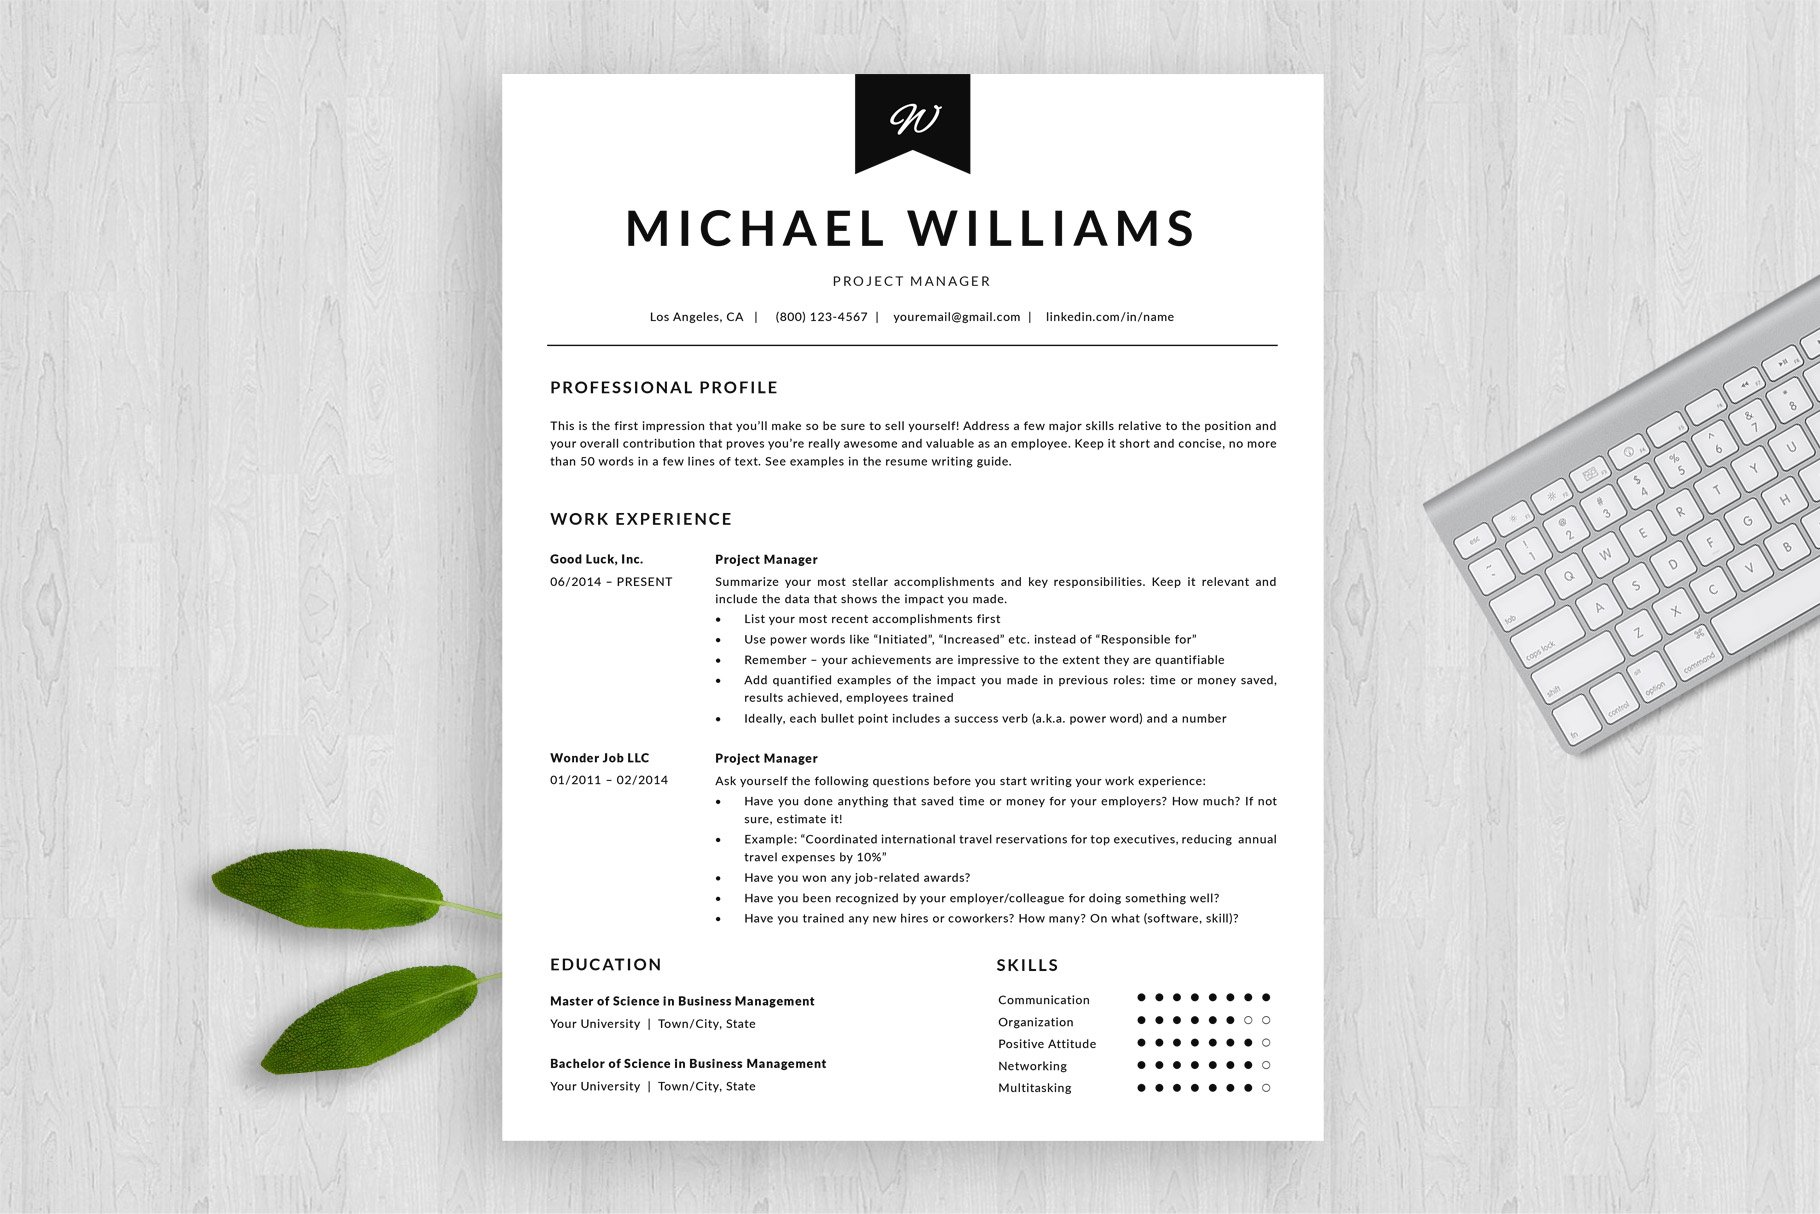 modern resume template and cover letter template  u0026quot michael